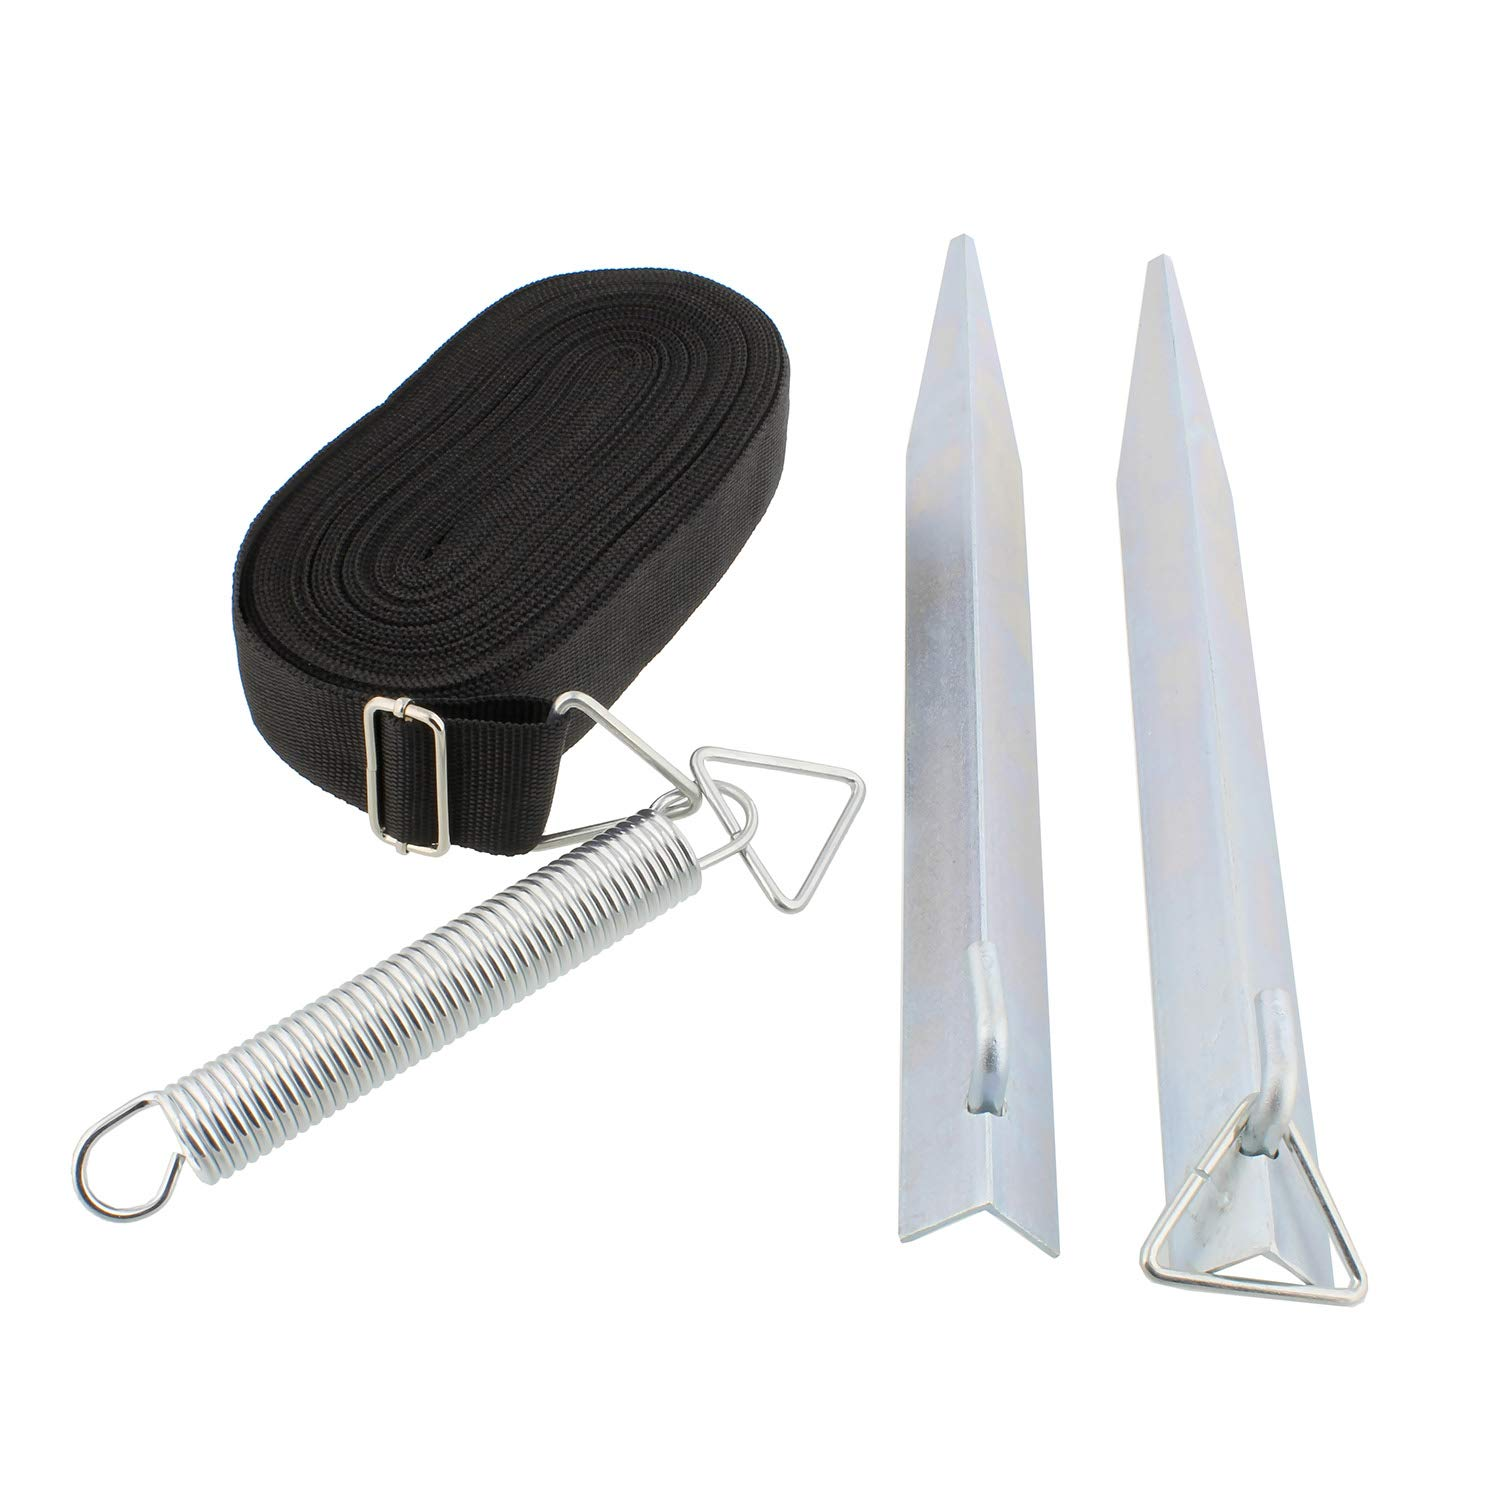 Dumble RV Awning Tie Down Kit Single Strap Tie Down Anchor Awning Tie Downs for RV and Camper Awning Accessories